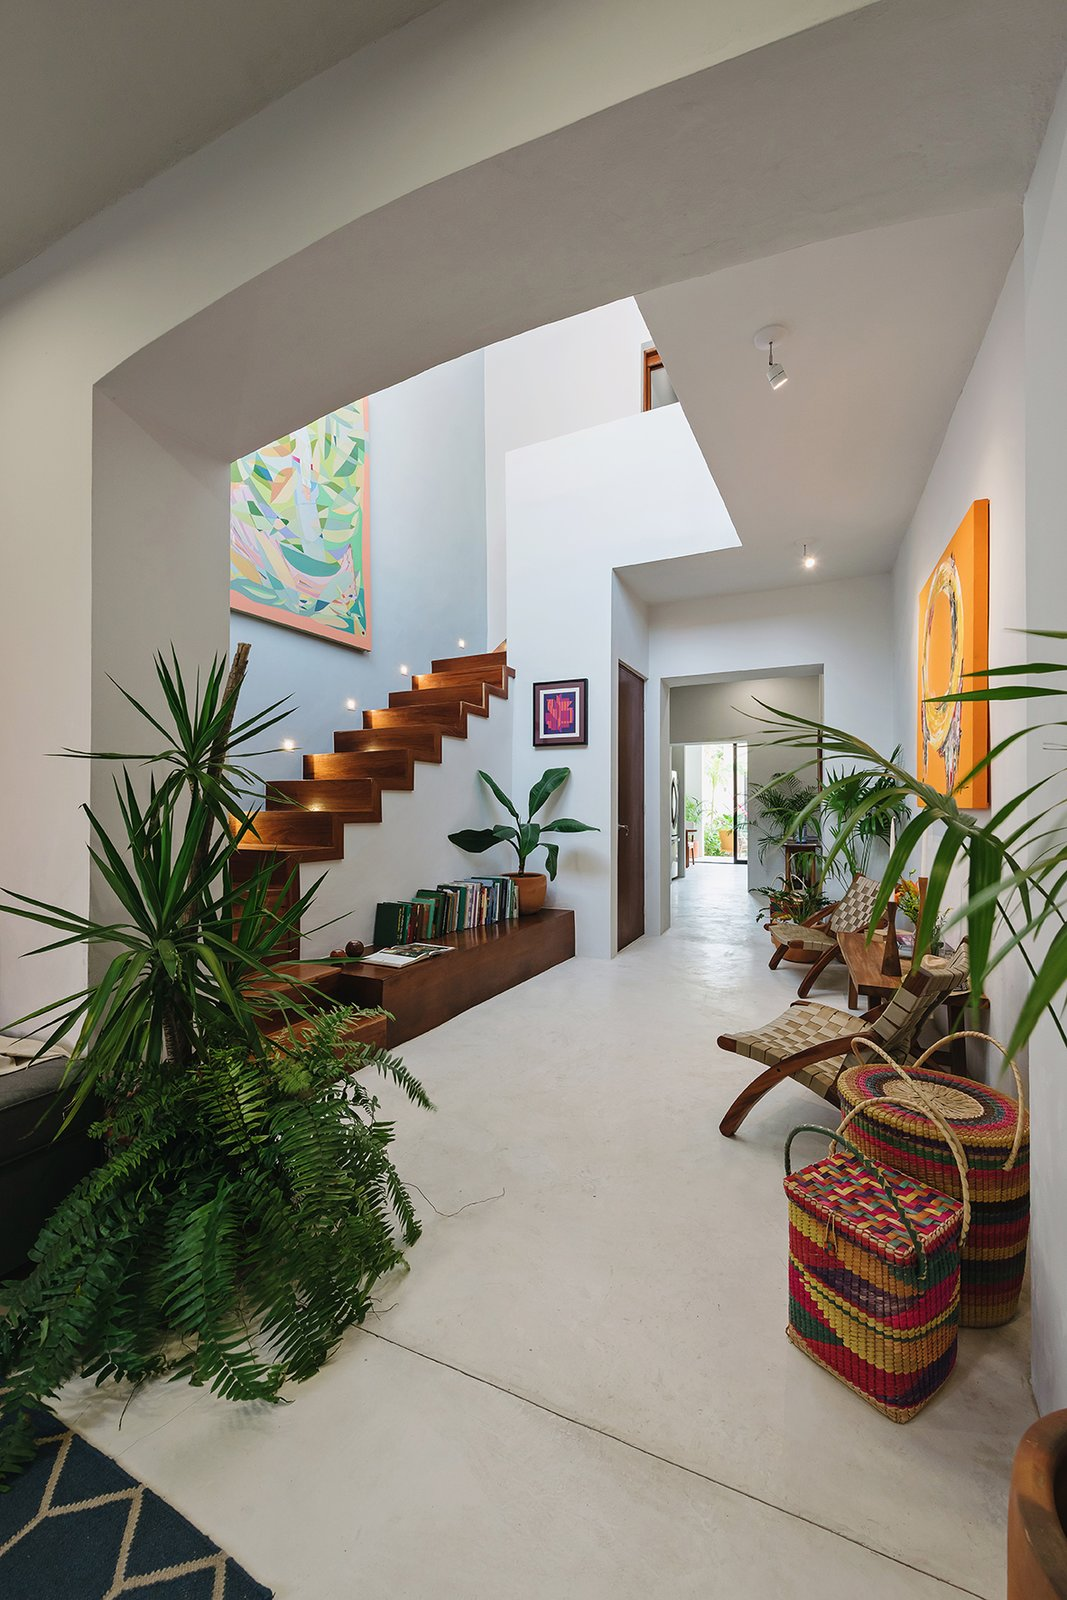 Staircase and Wood Tread Staircase  Photo 1 of 6 in Top 5 Homes of the Week With Captivating Staircases from Casa Picasso